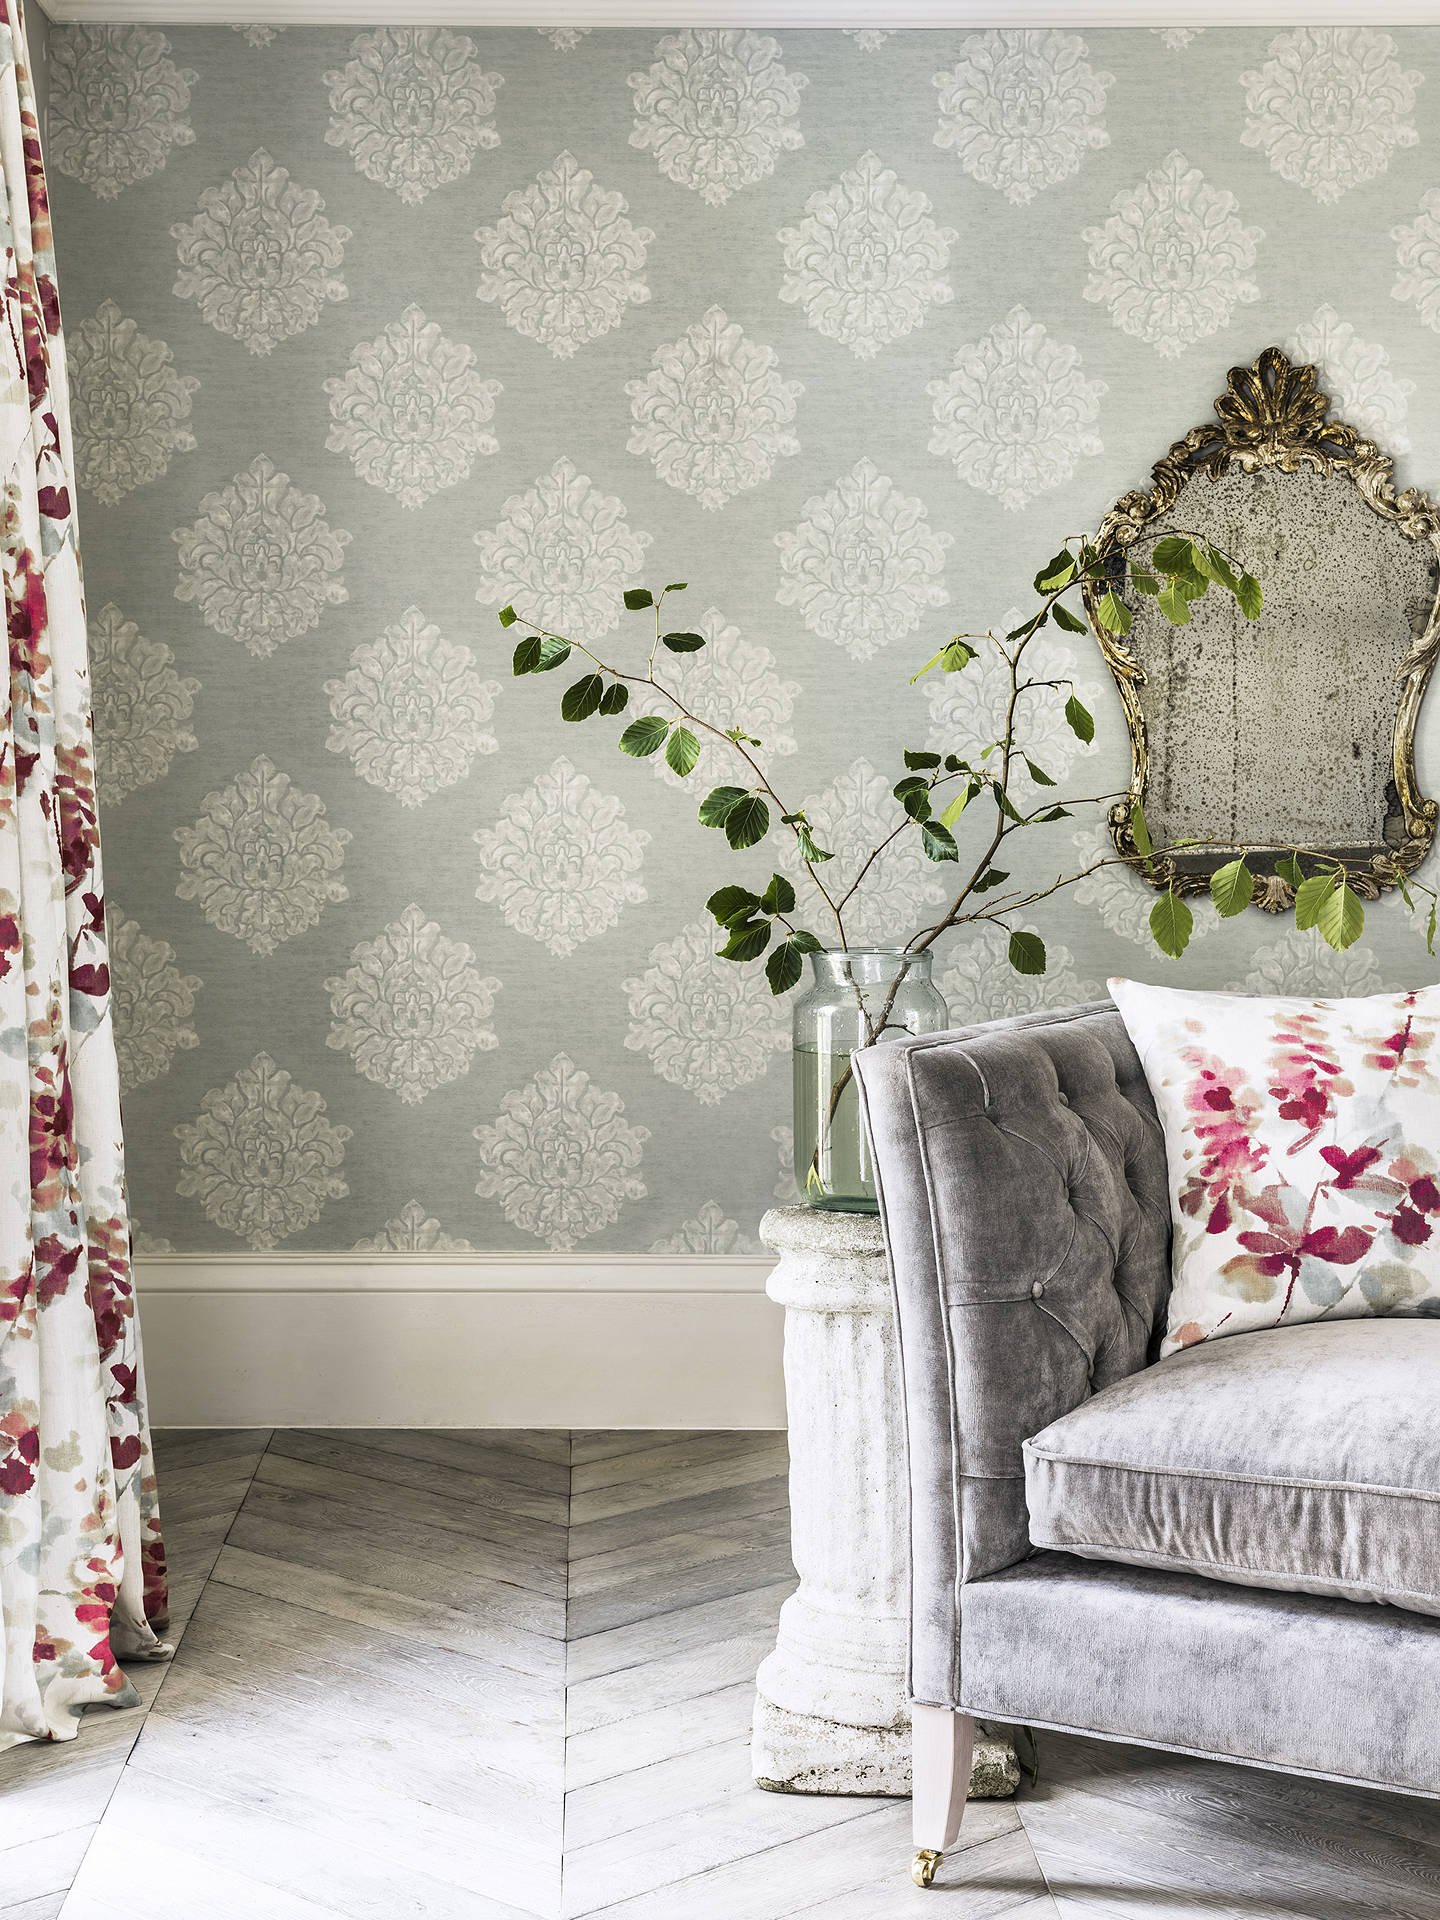 Buy Sanderson Waterperry Laurie Wallpaper, Eggshell 216267 Online at johnlewis.com